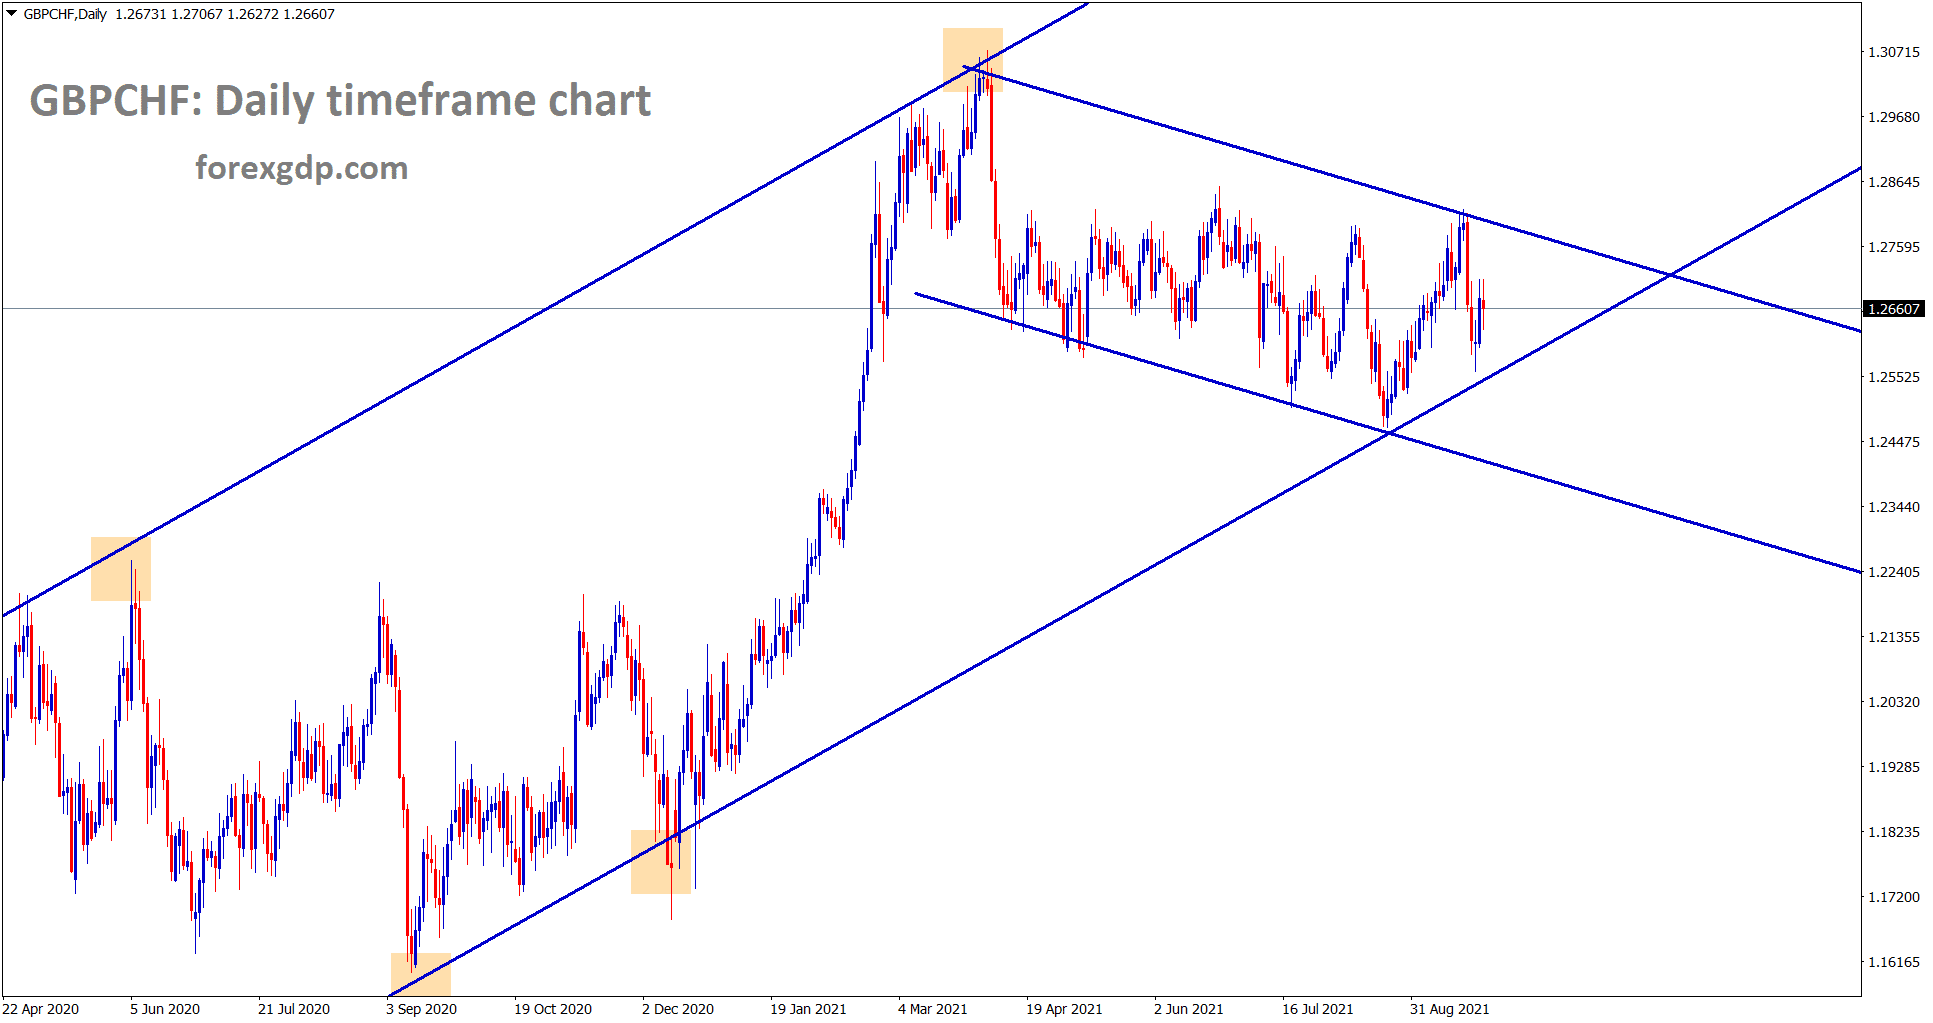 GBPCHF is moving in a channel range trying to break the higher low of major uptrend line.